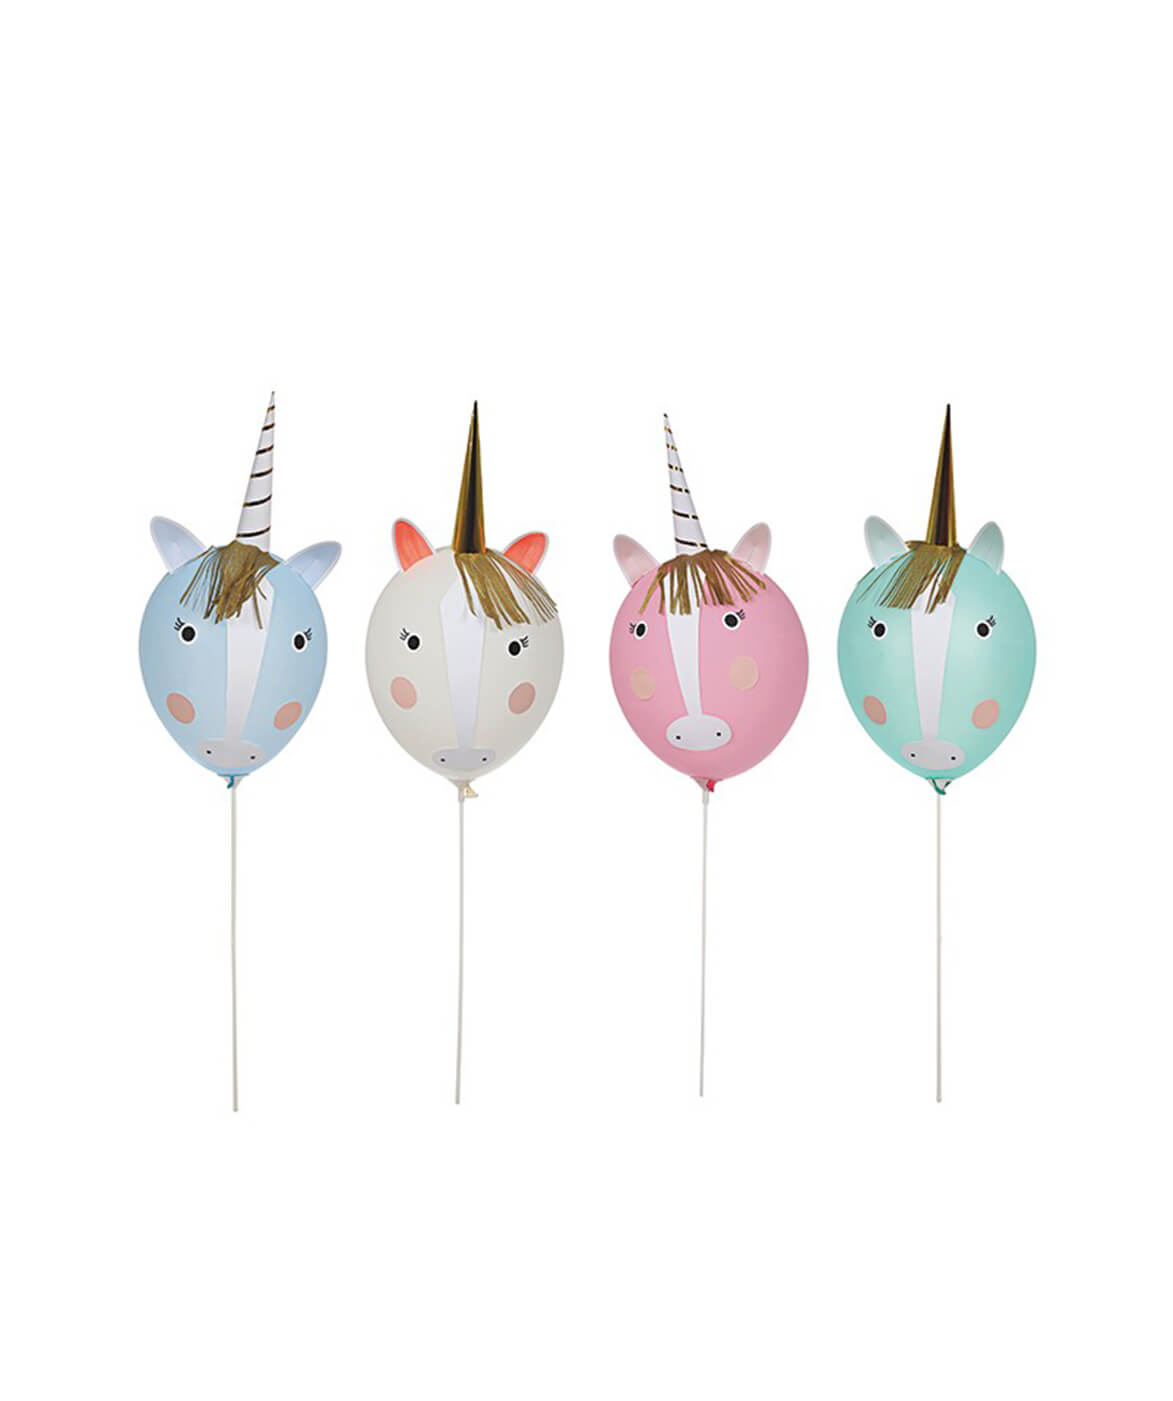 UNICORN & RAINBOWS BALLOON KIT